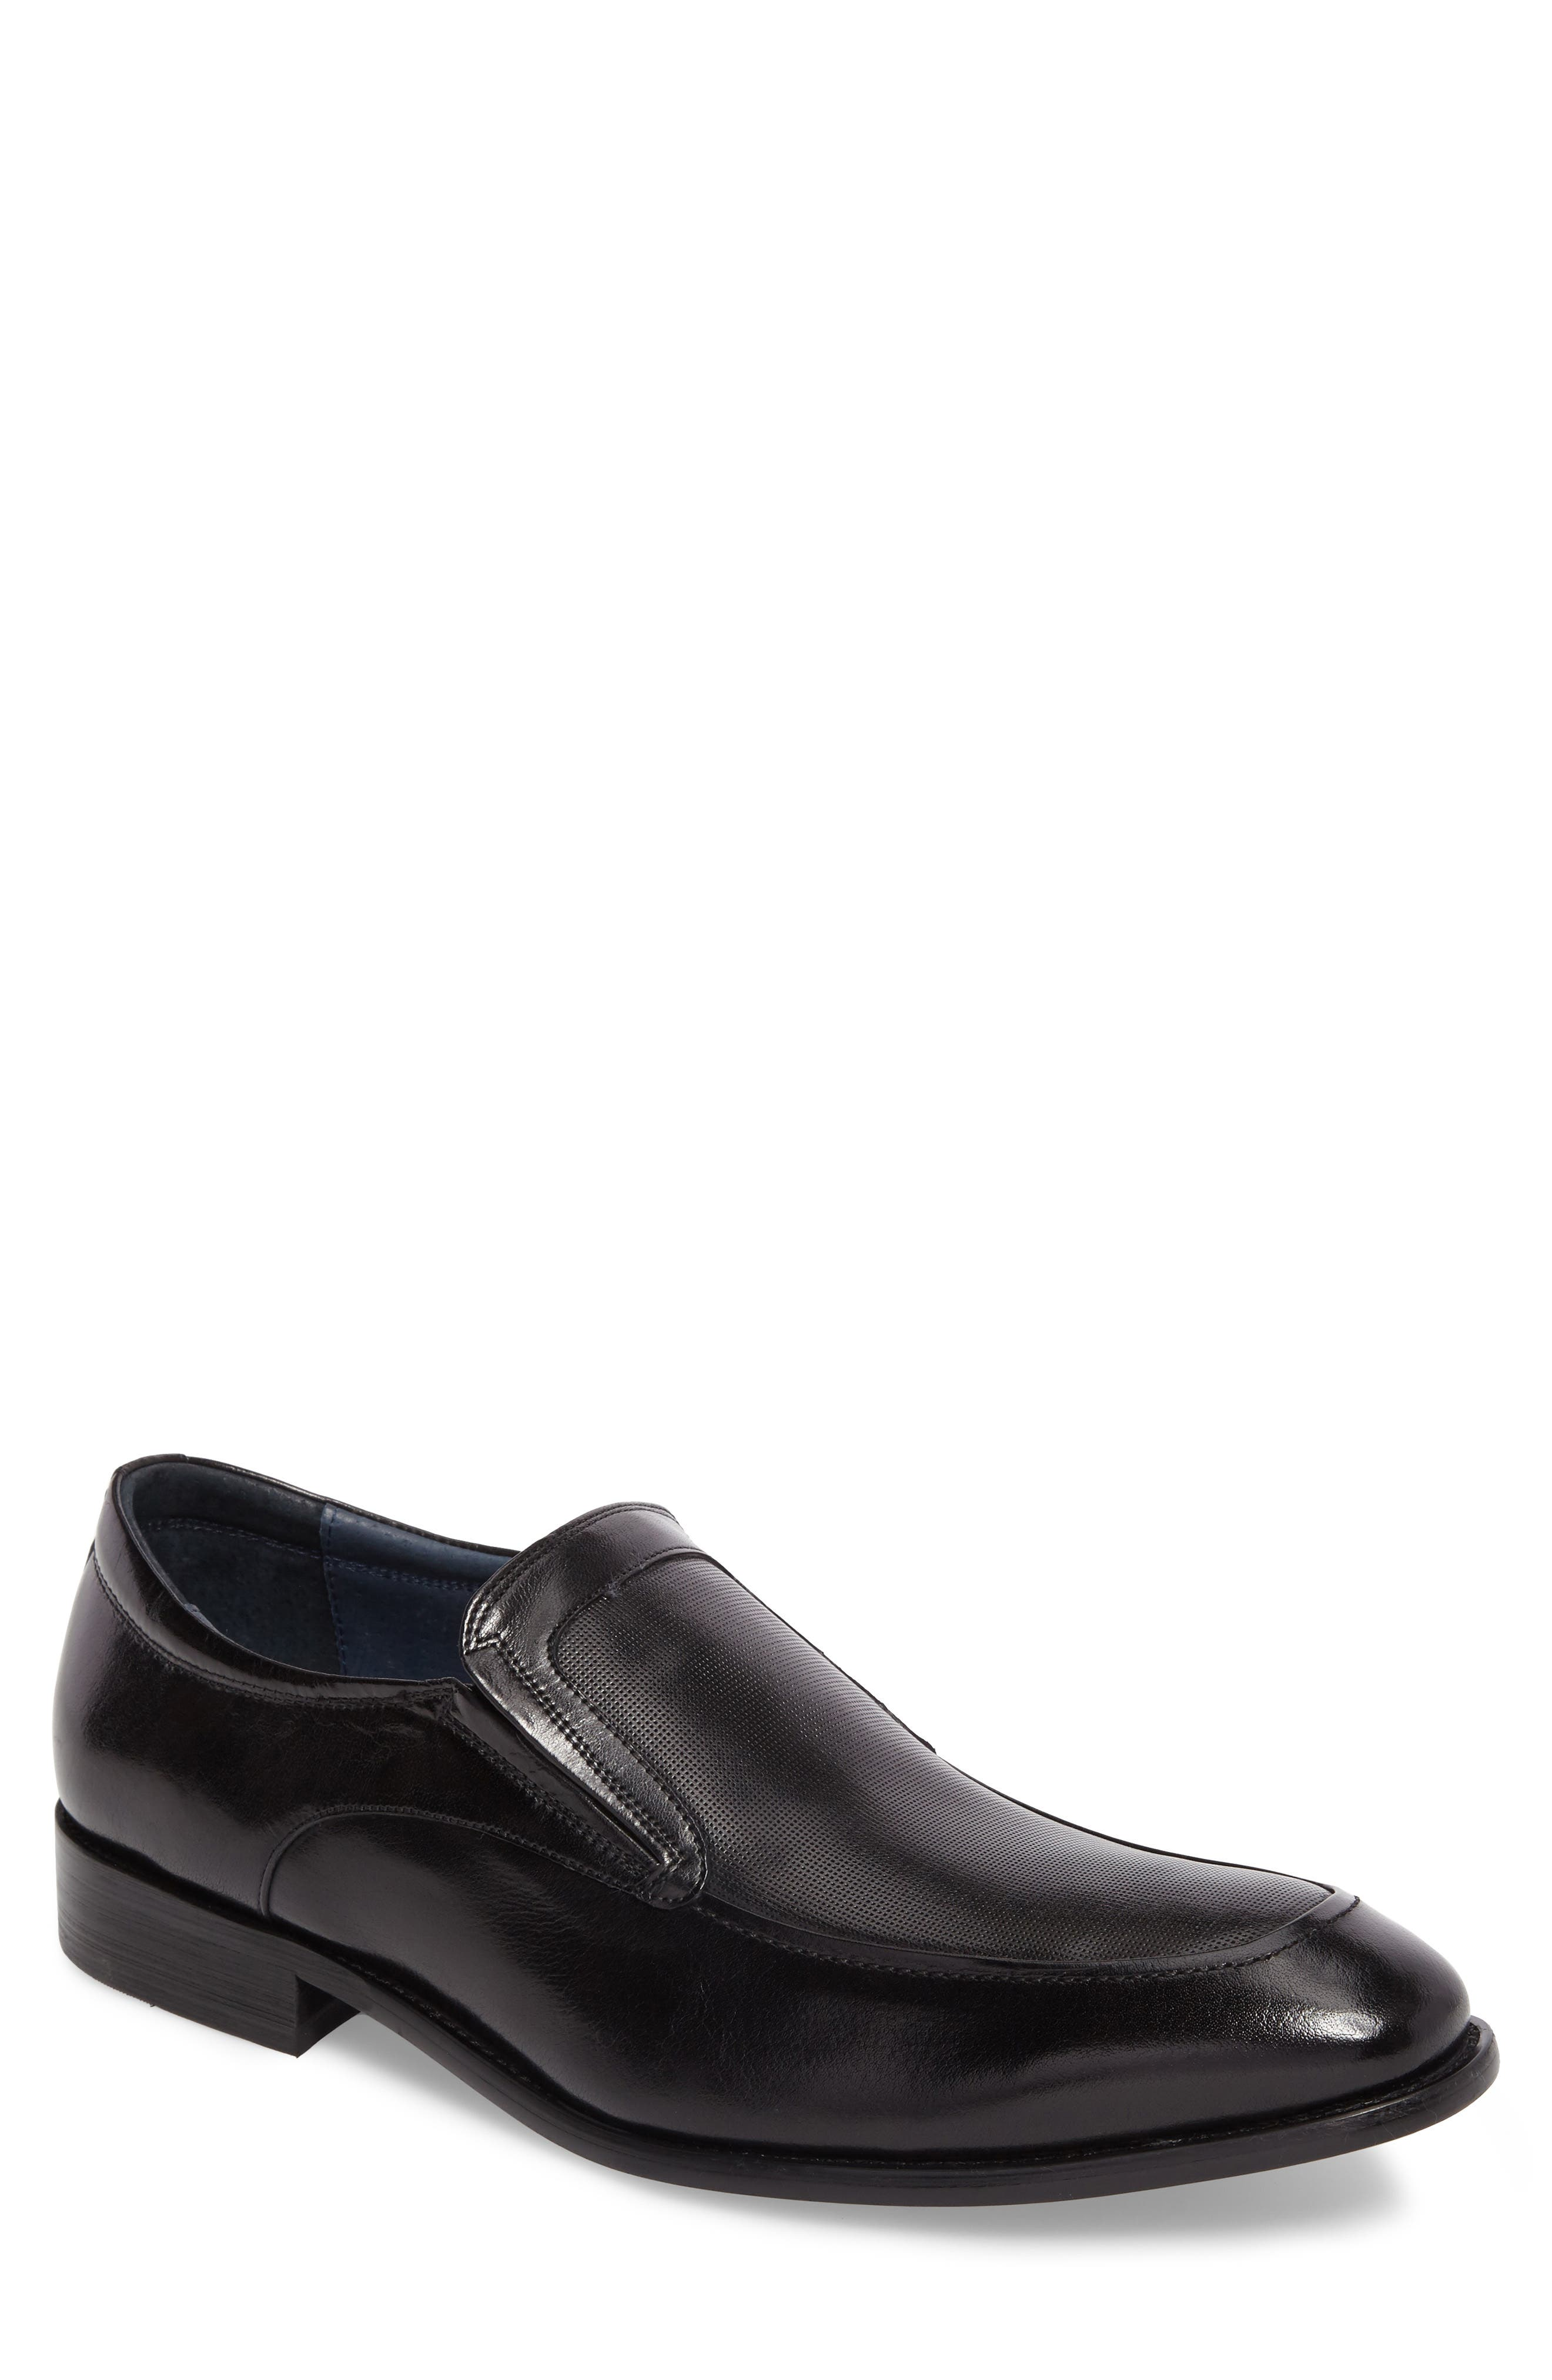 Main Image - Stacy Adams Jace Embossed Apron Toe Loafer (Men)